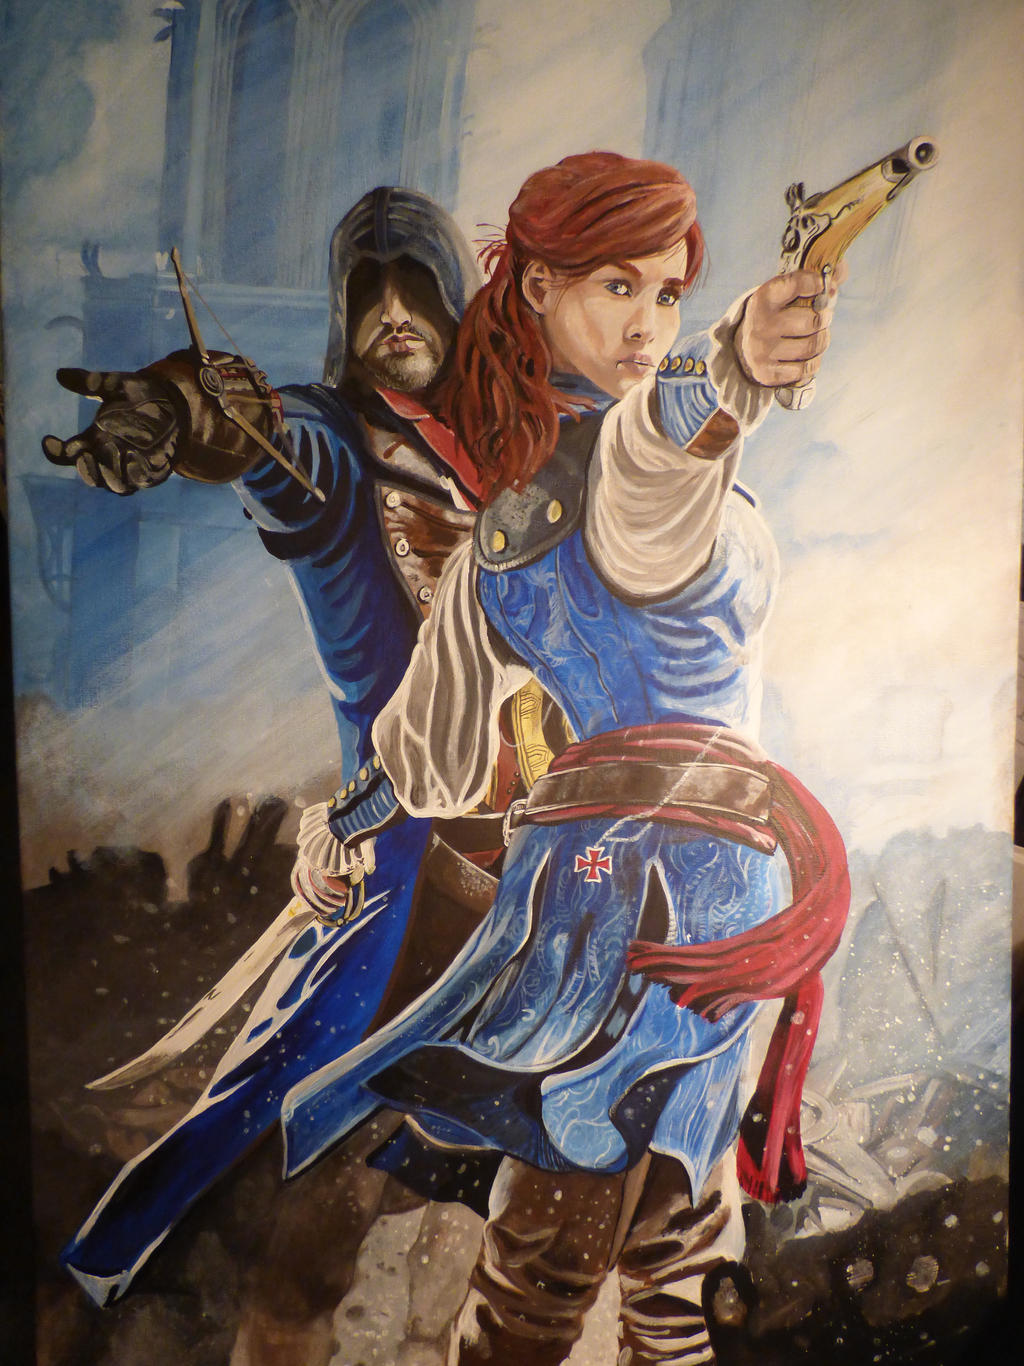 Assassins Creed Unity on canvas by The-Welsh-Wolf on DeviantArt